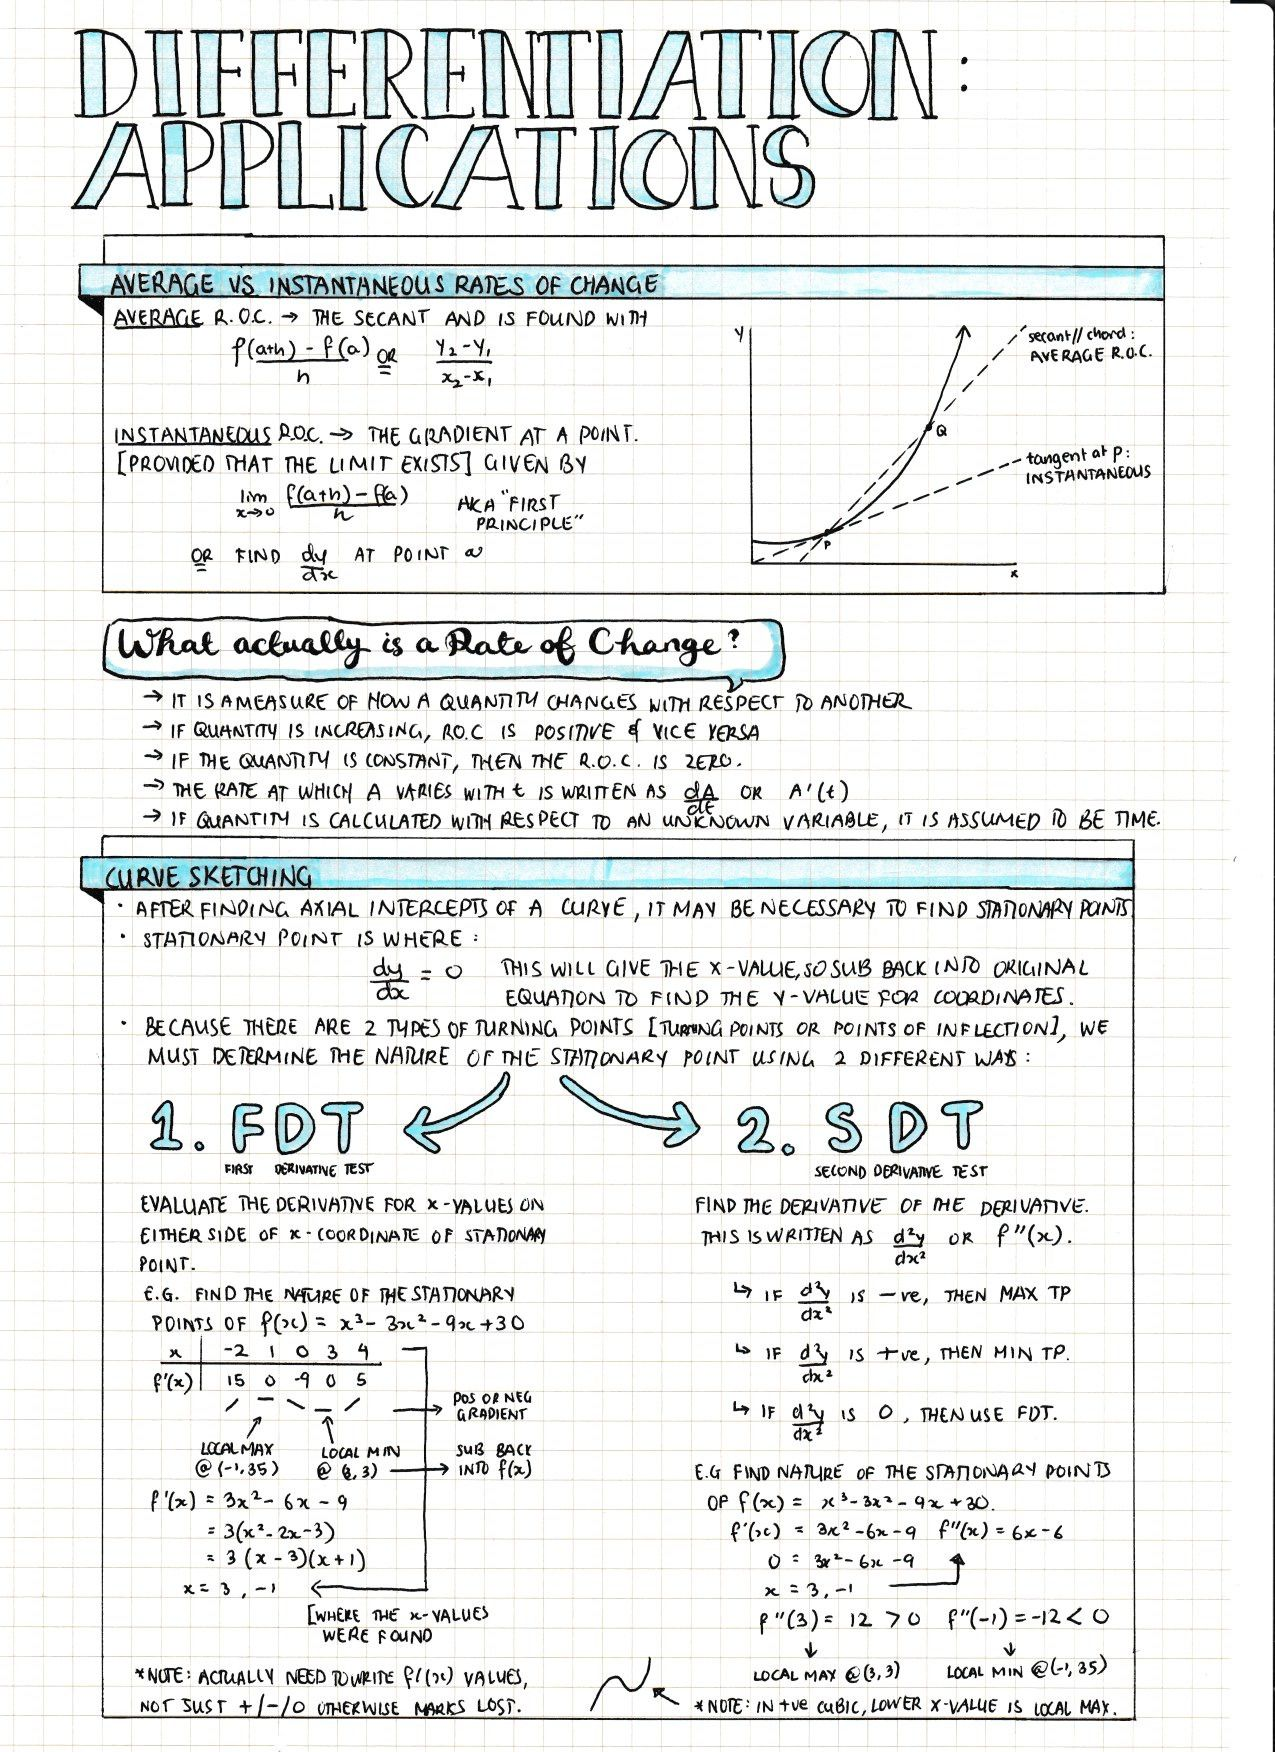 Pin By Pradip On Studying Math Study Guide Study Notes Math Notes